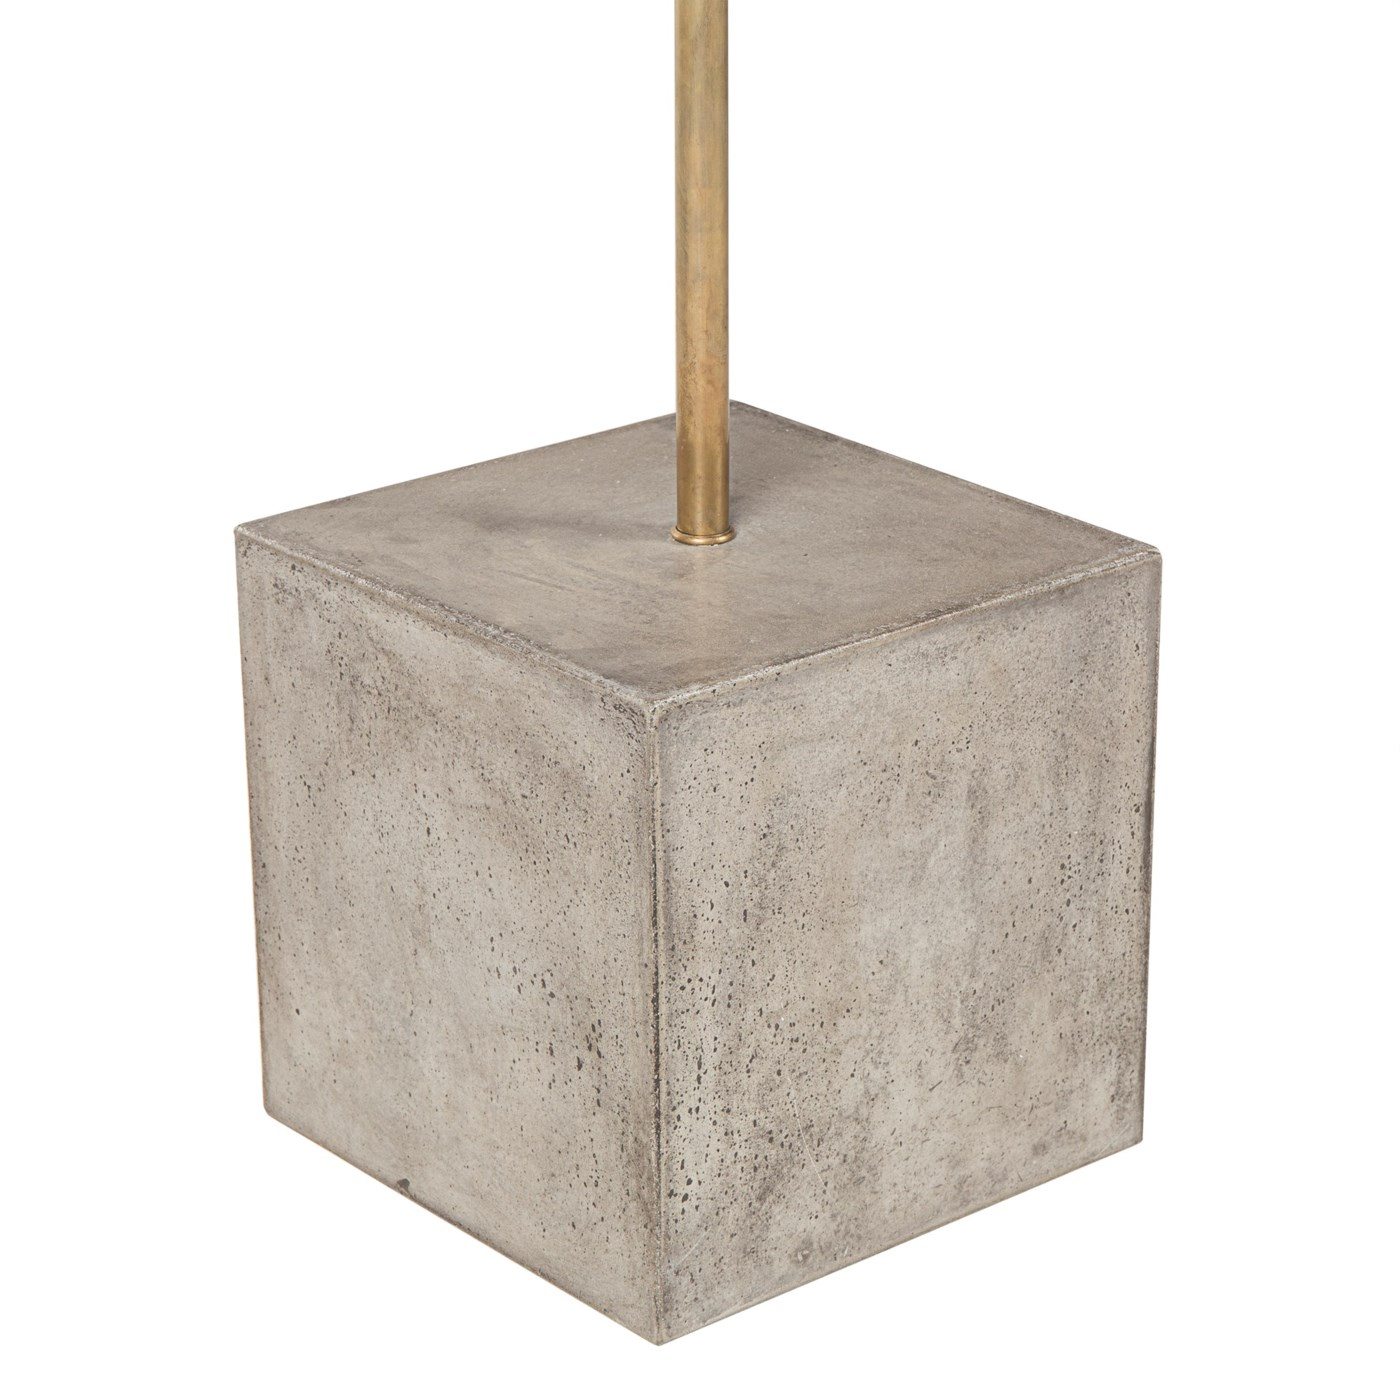 Untitled Floor Lamp - Square / White Shade